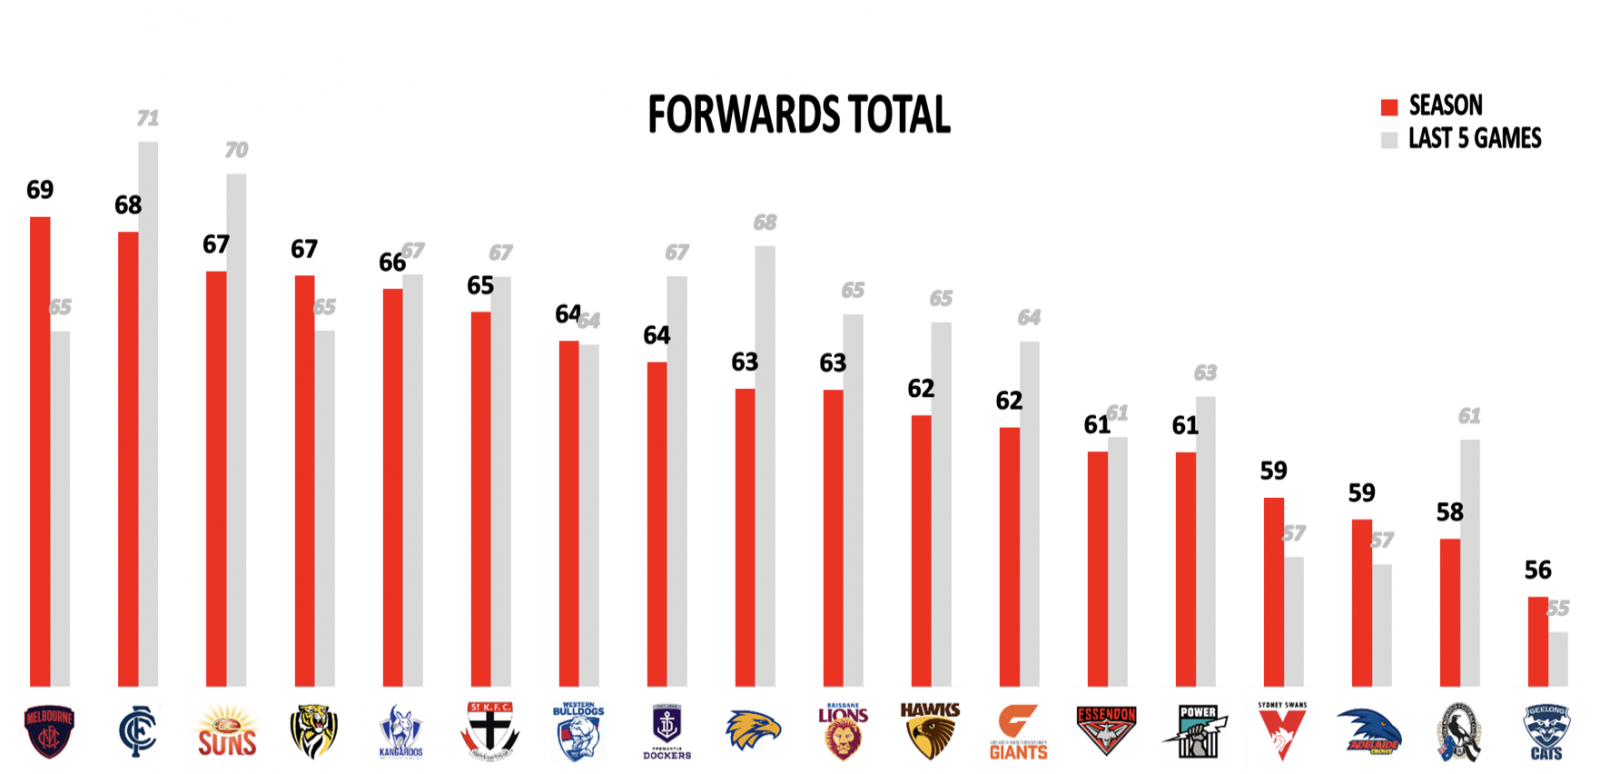 Forwards points